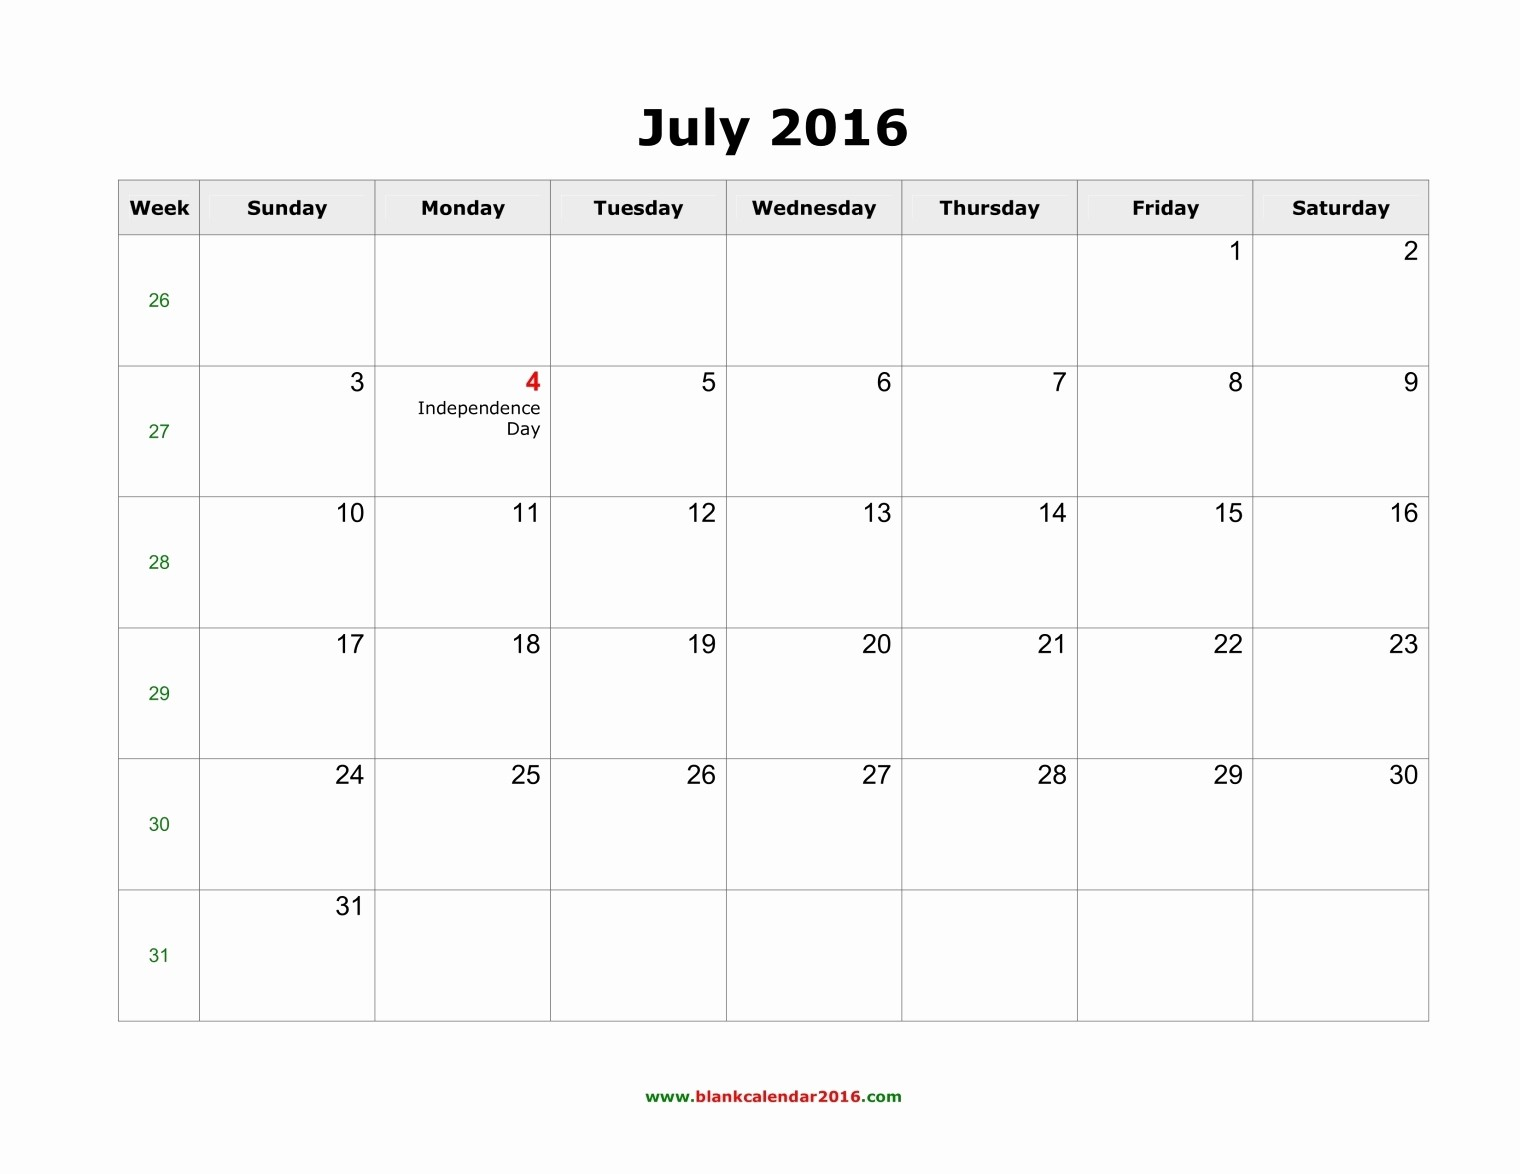 Calendar 2016 Printable with Holidays Inspirational July 2016 Calendar Holidays – 2017 Printable Calendar